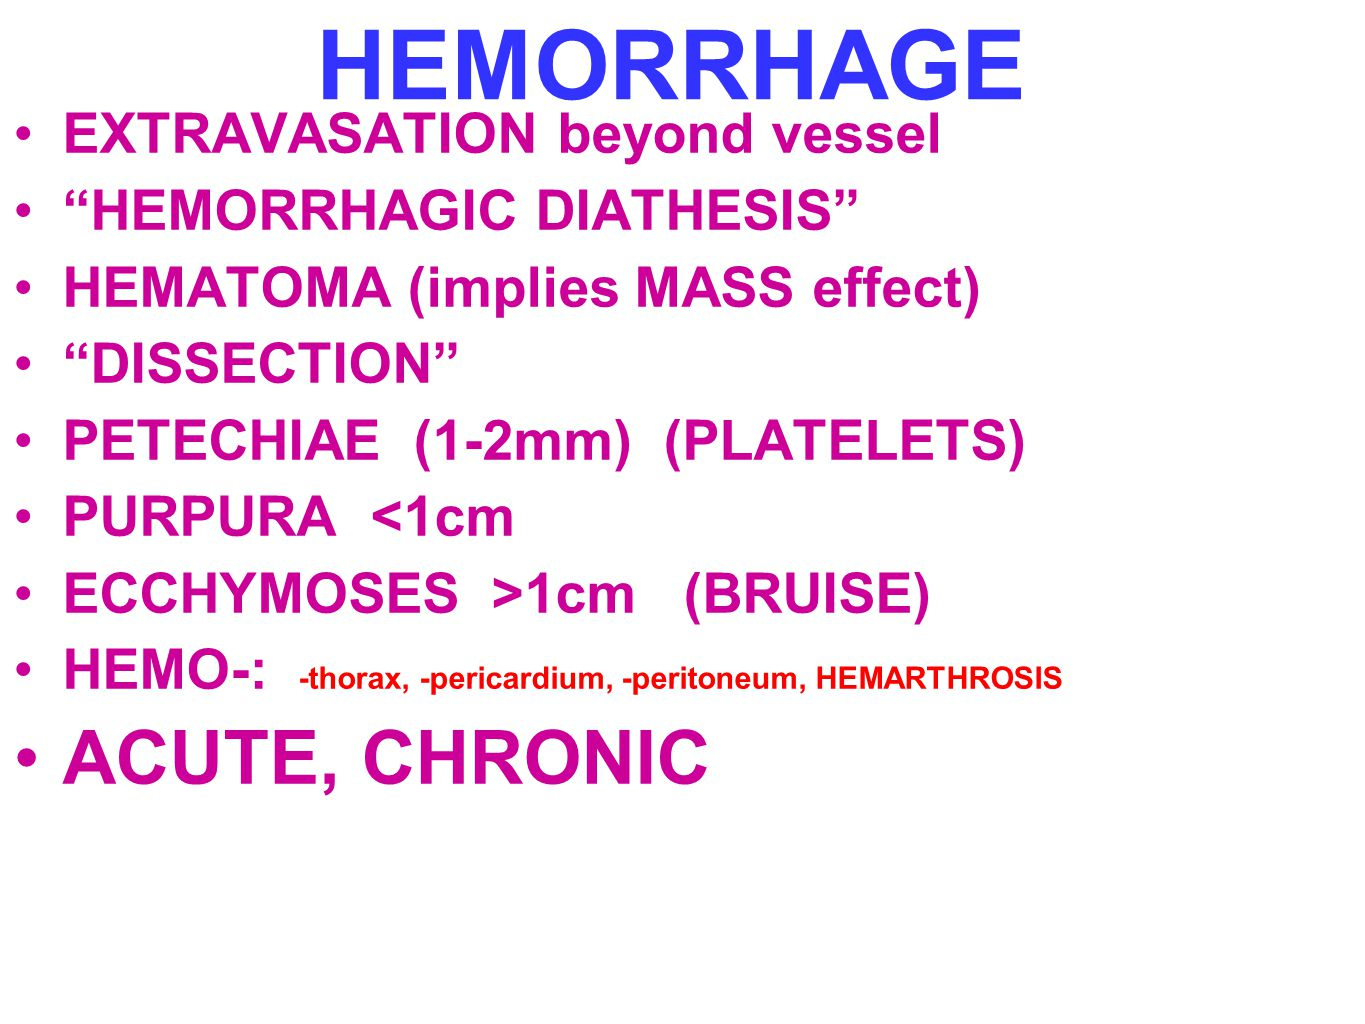 hemorrhagic diasthesis Cervical cancer and screening study play colposcopy medical diagnostic procedure to examine an illuminated, magnified view of the cervix and the tissues of the vagina and vulva colposcopy is used to pinpoint which areas to biopsy  systemic: purpura, hemorrhagic diasthesis, iatrogenic (iud, drugs, ocps) early signs of invasive cervical.